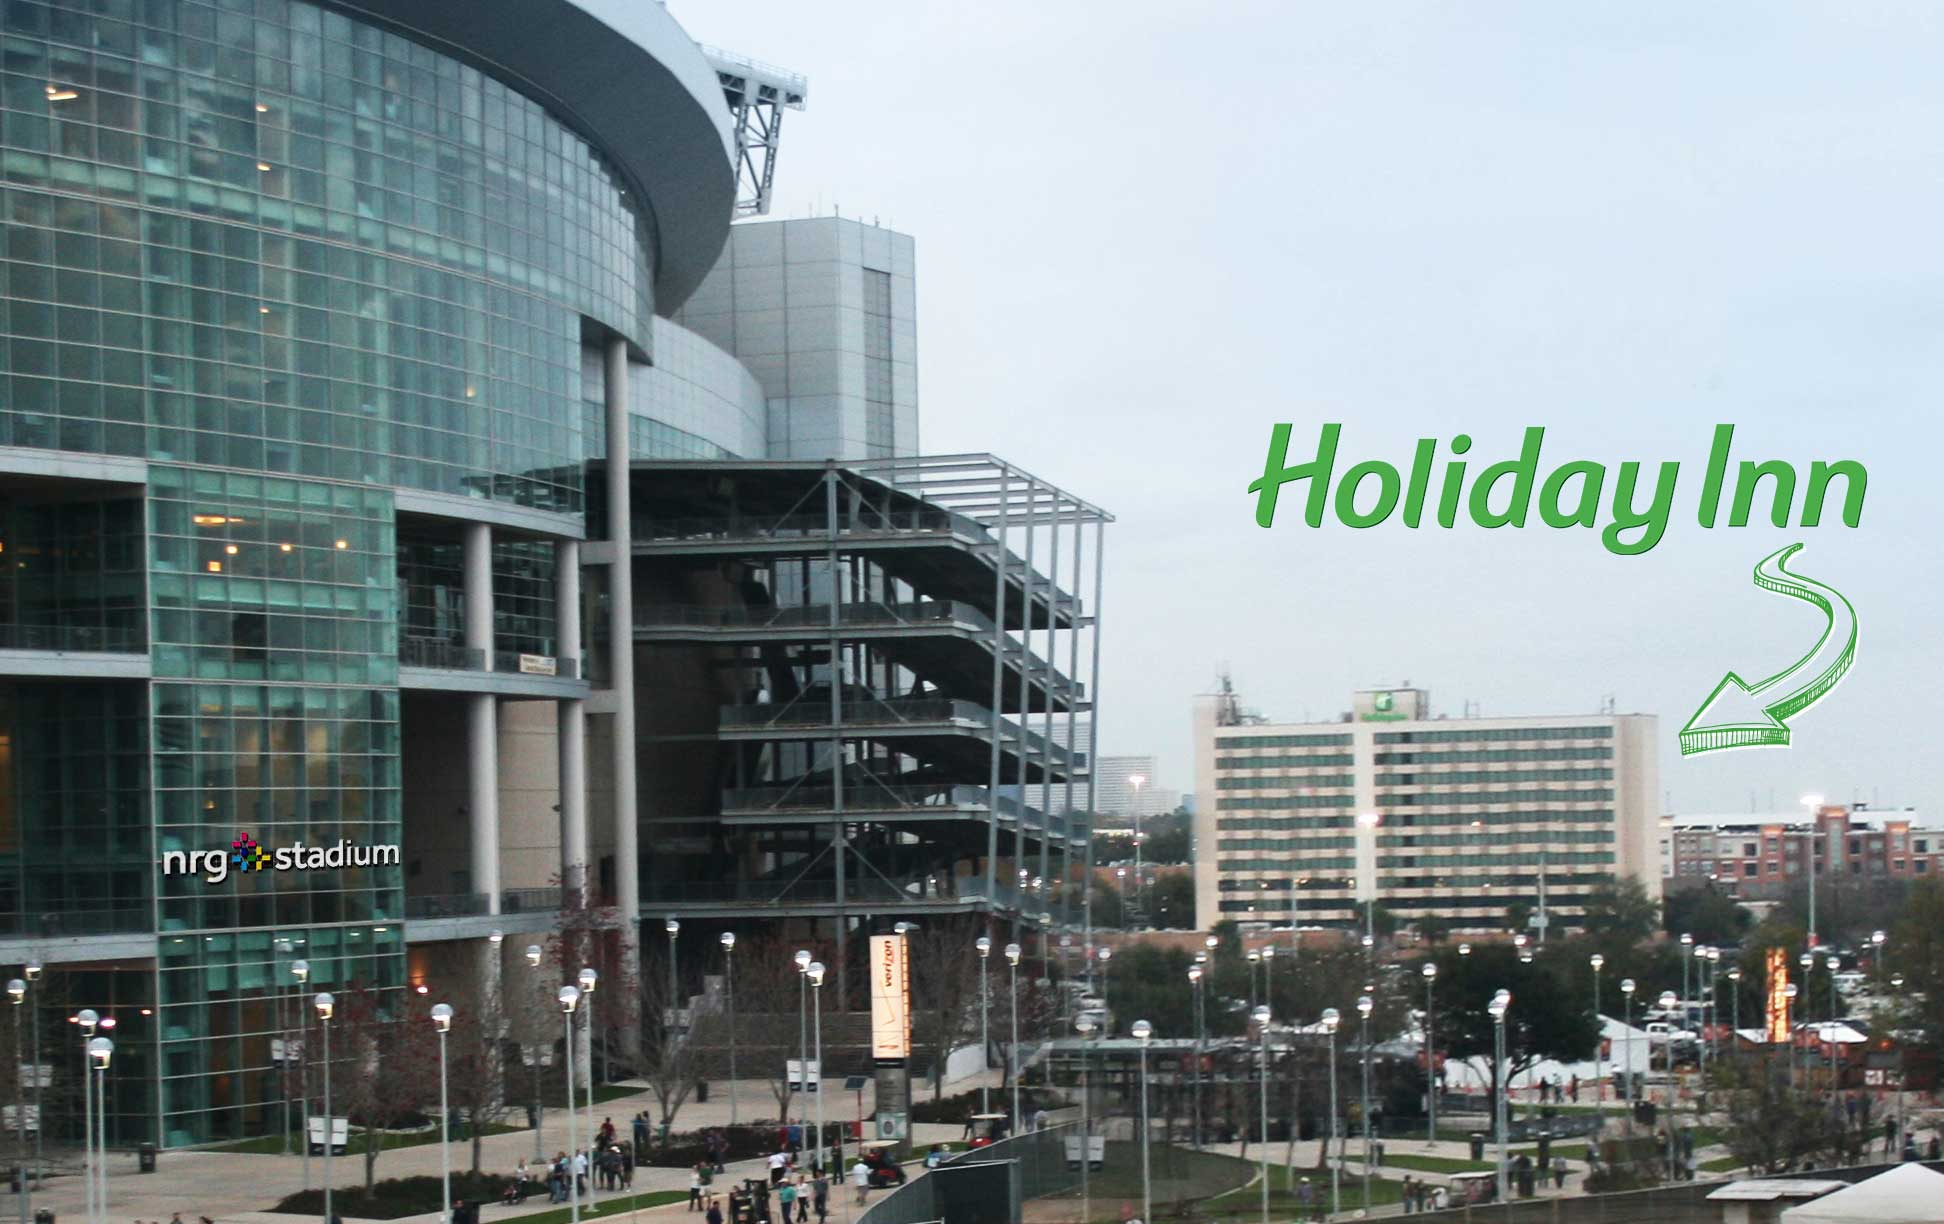 Holiday Inn Houston NRG Medical Center Area Exterior